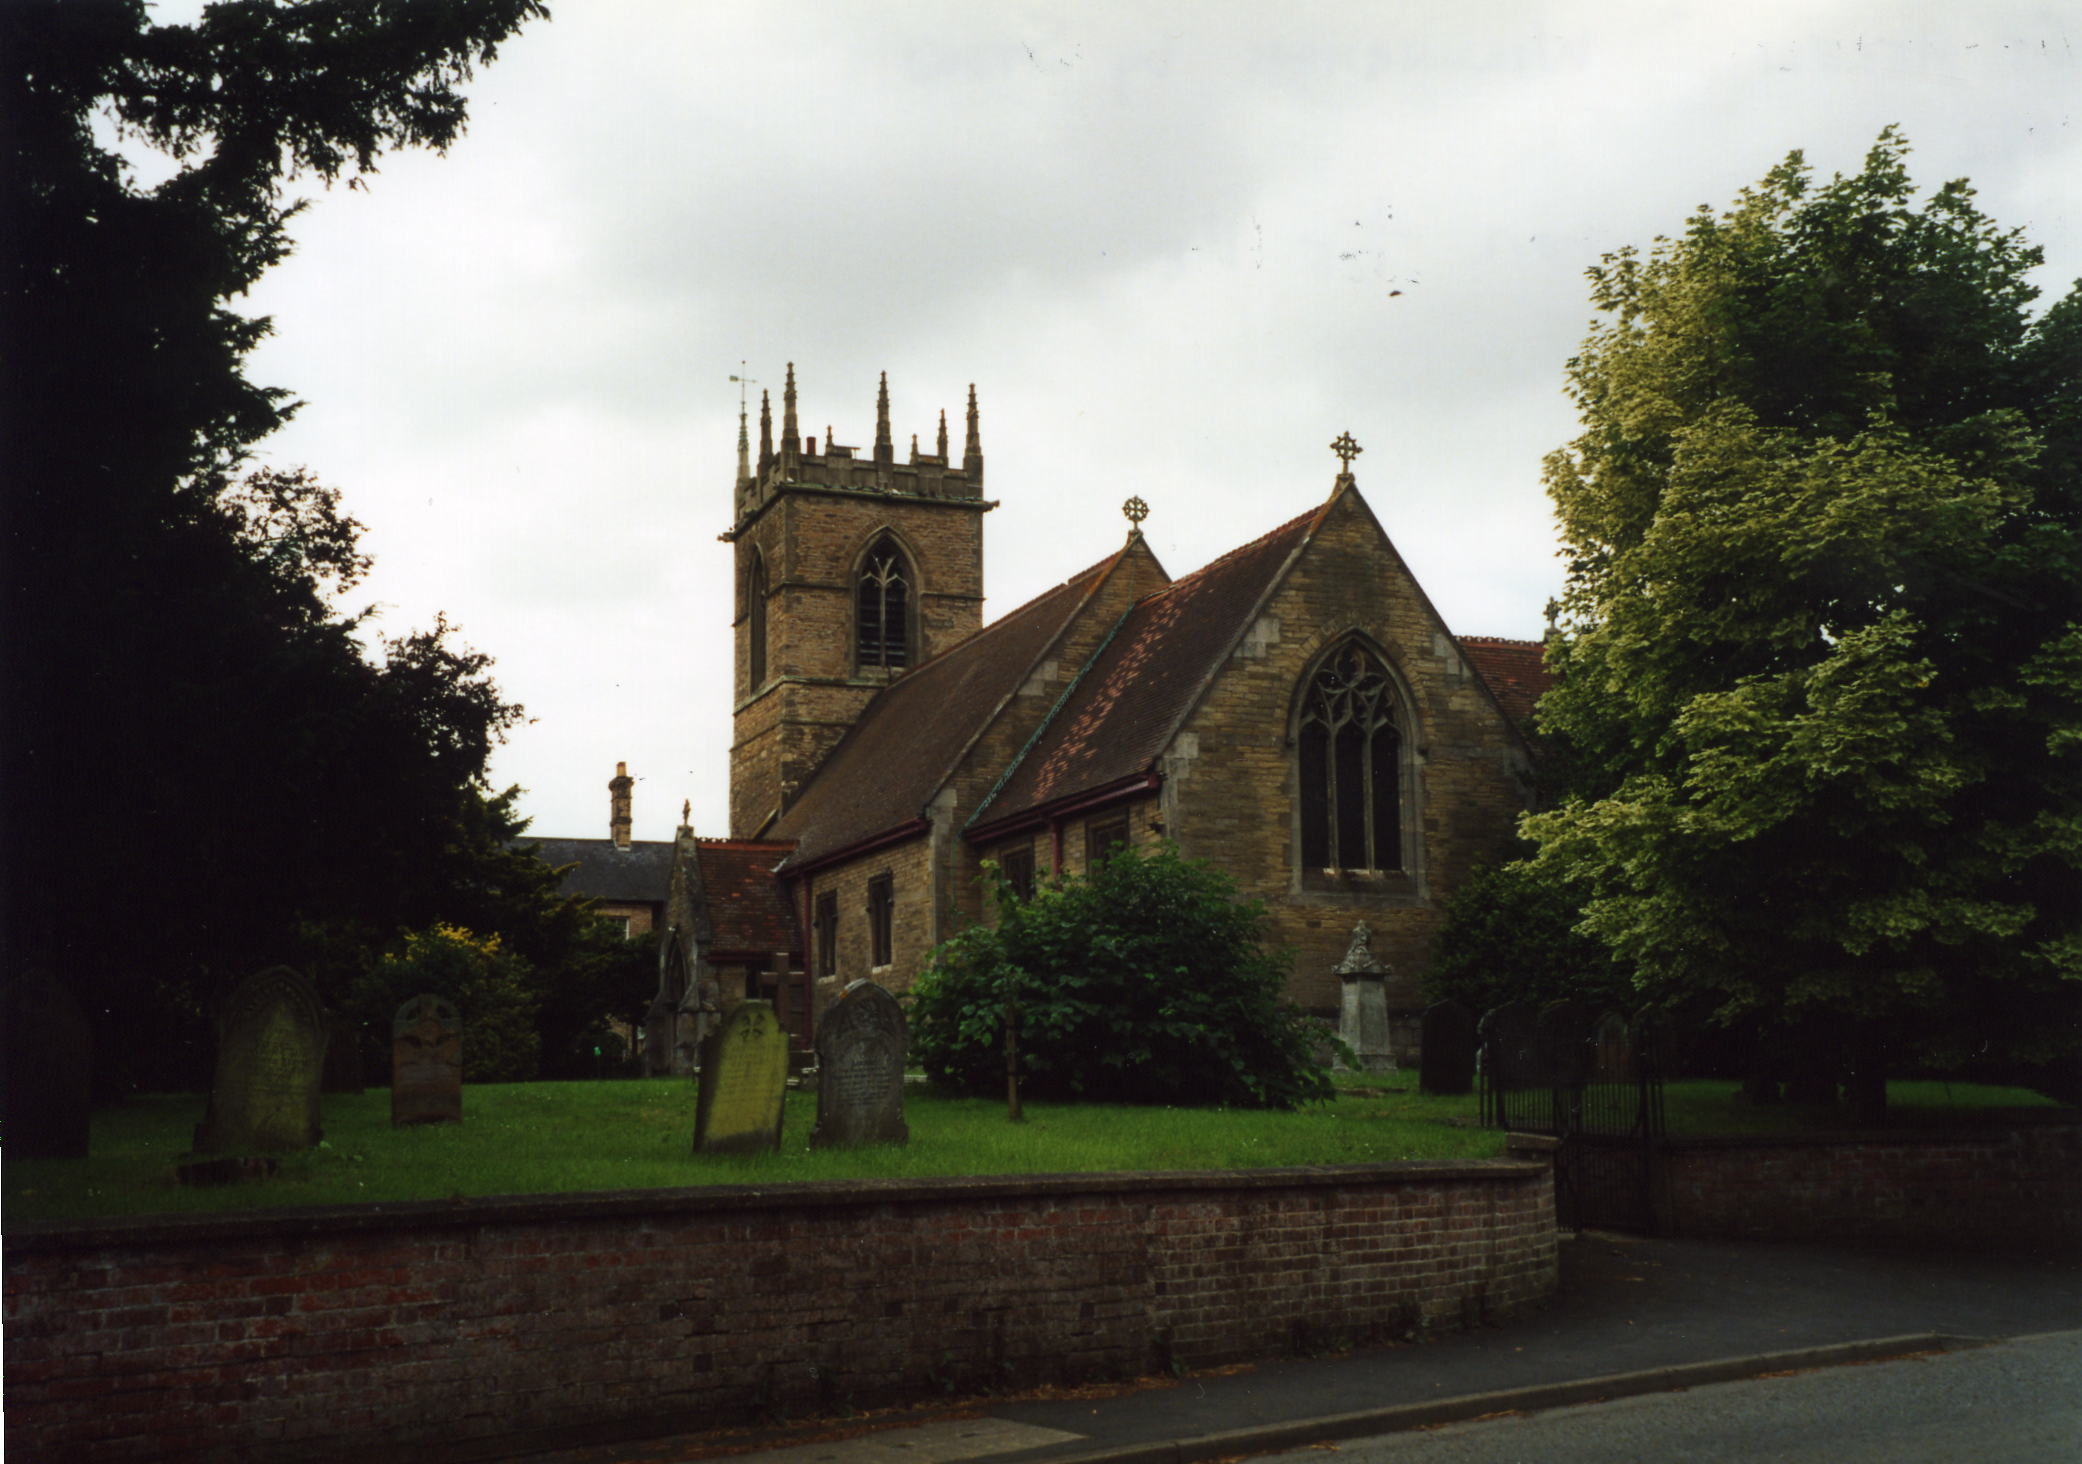 St. Helen's Church